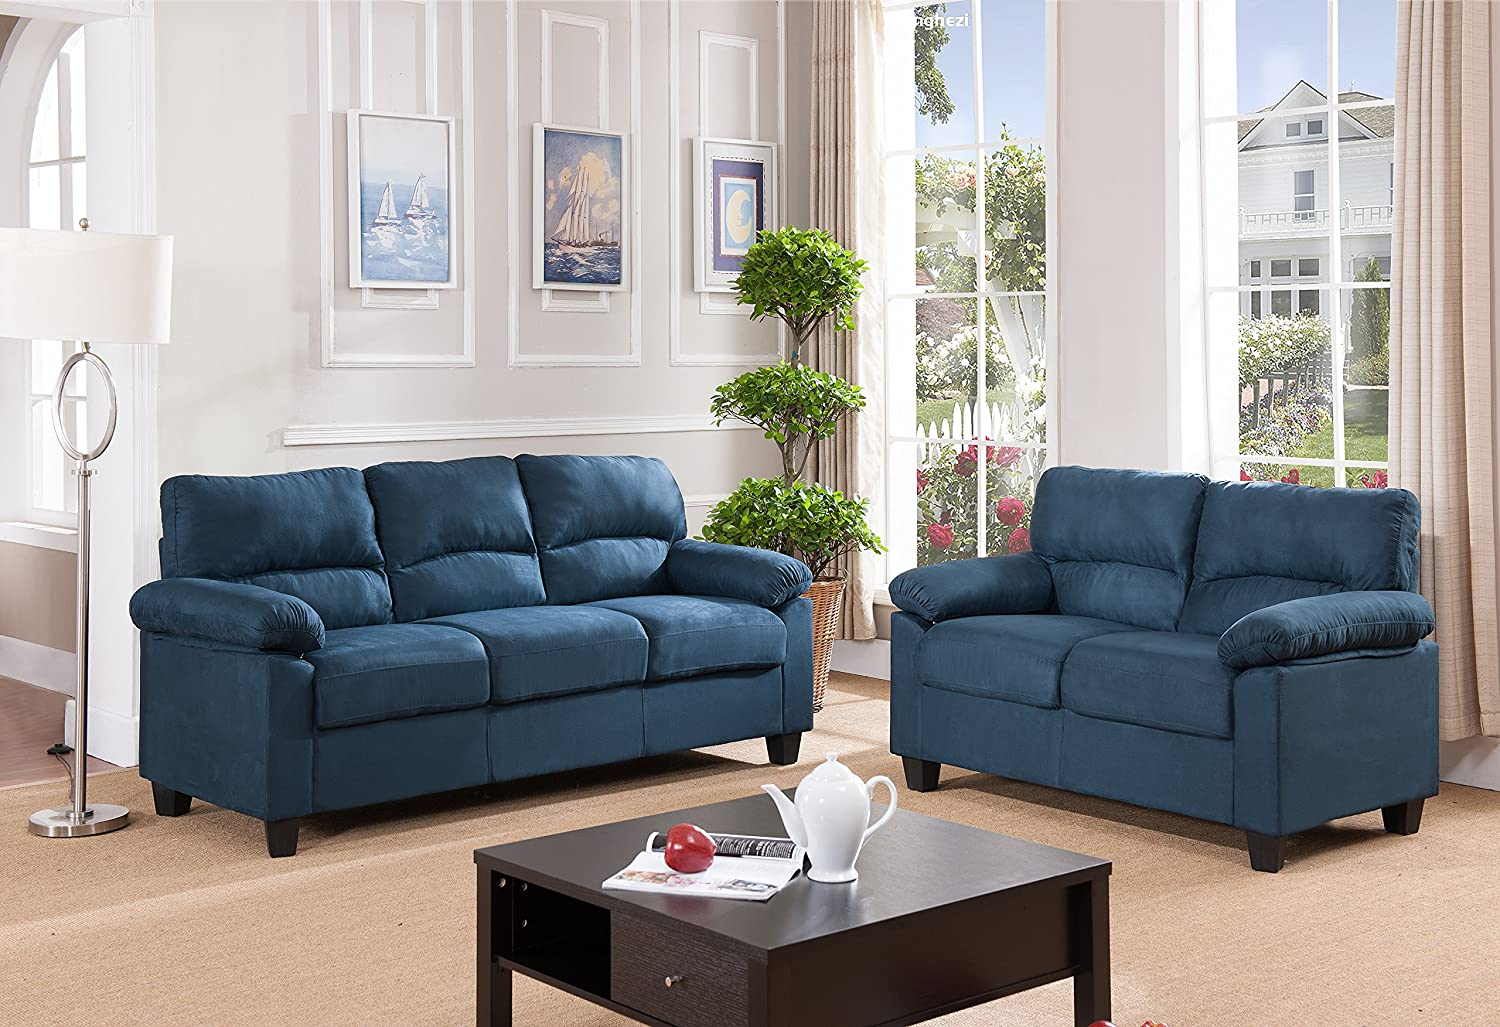 Amazon com kings brand furniture blue microfiber living room set sofa loveseat kitchen dining